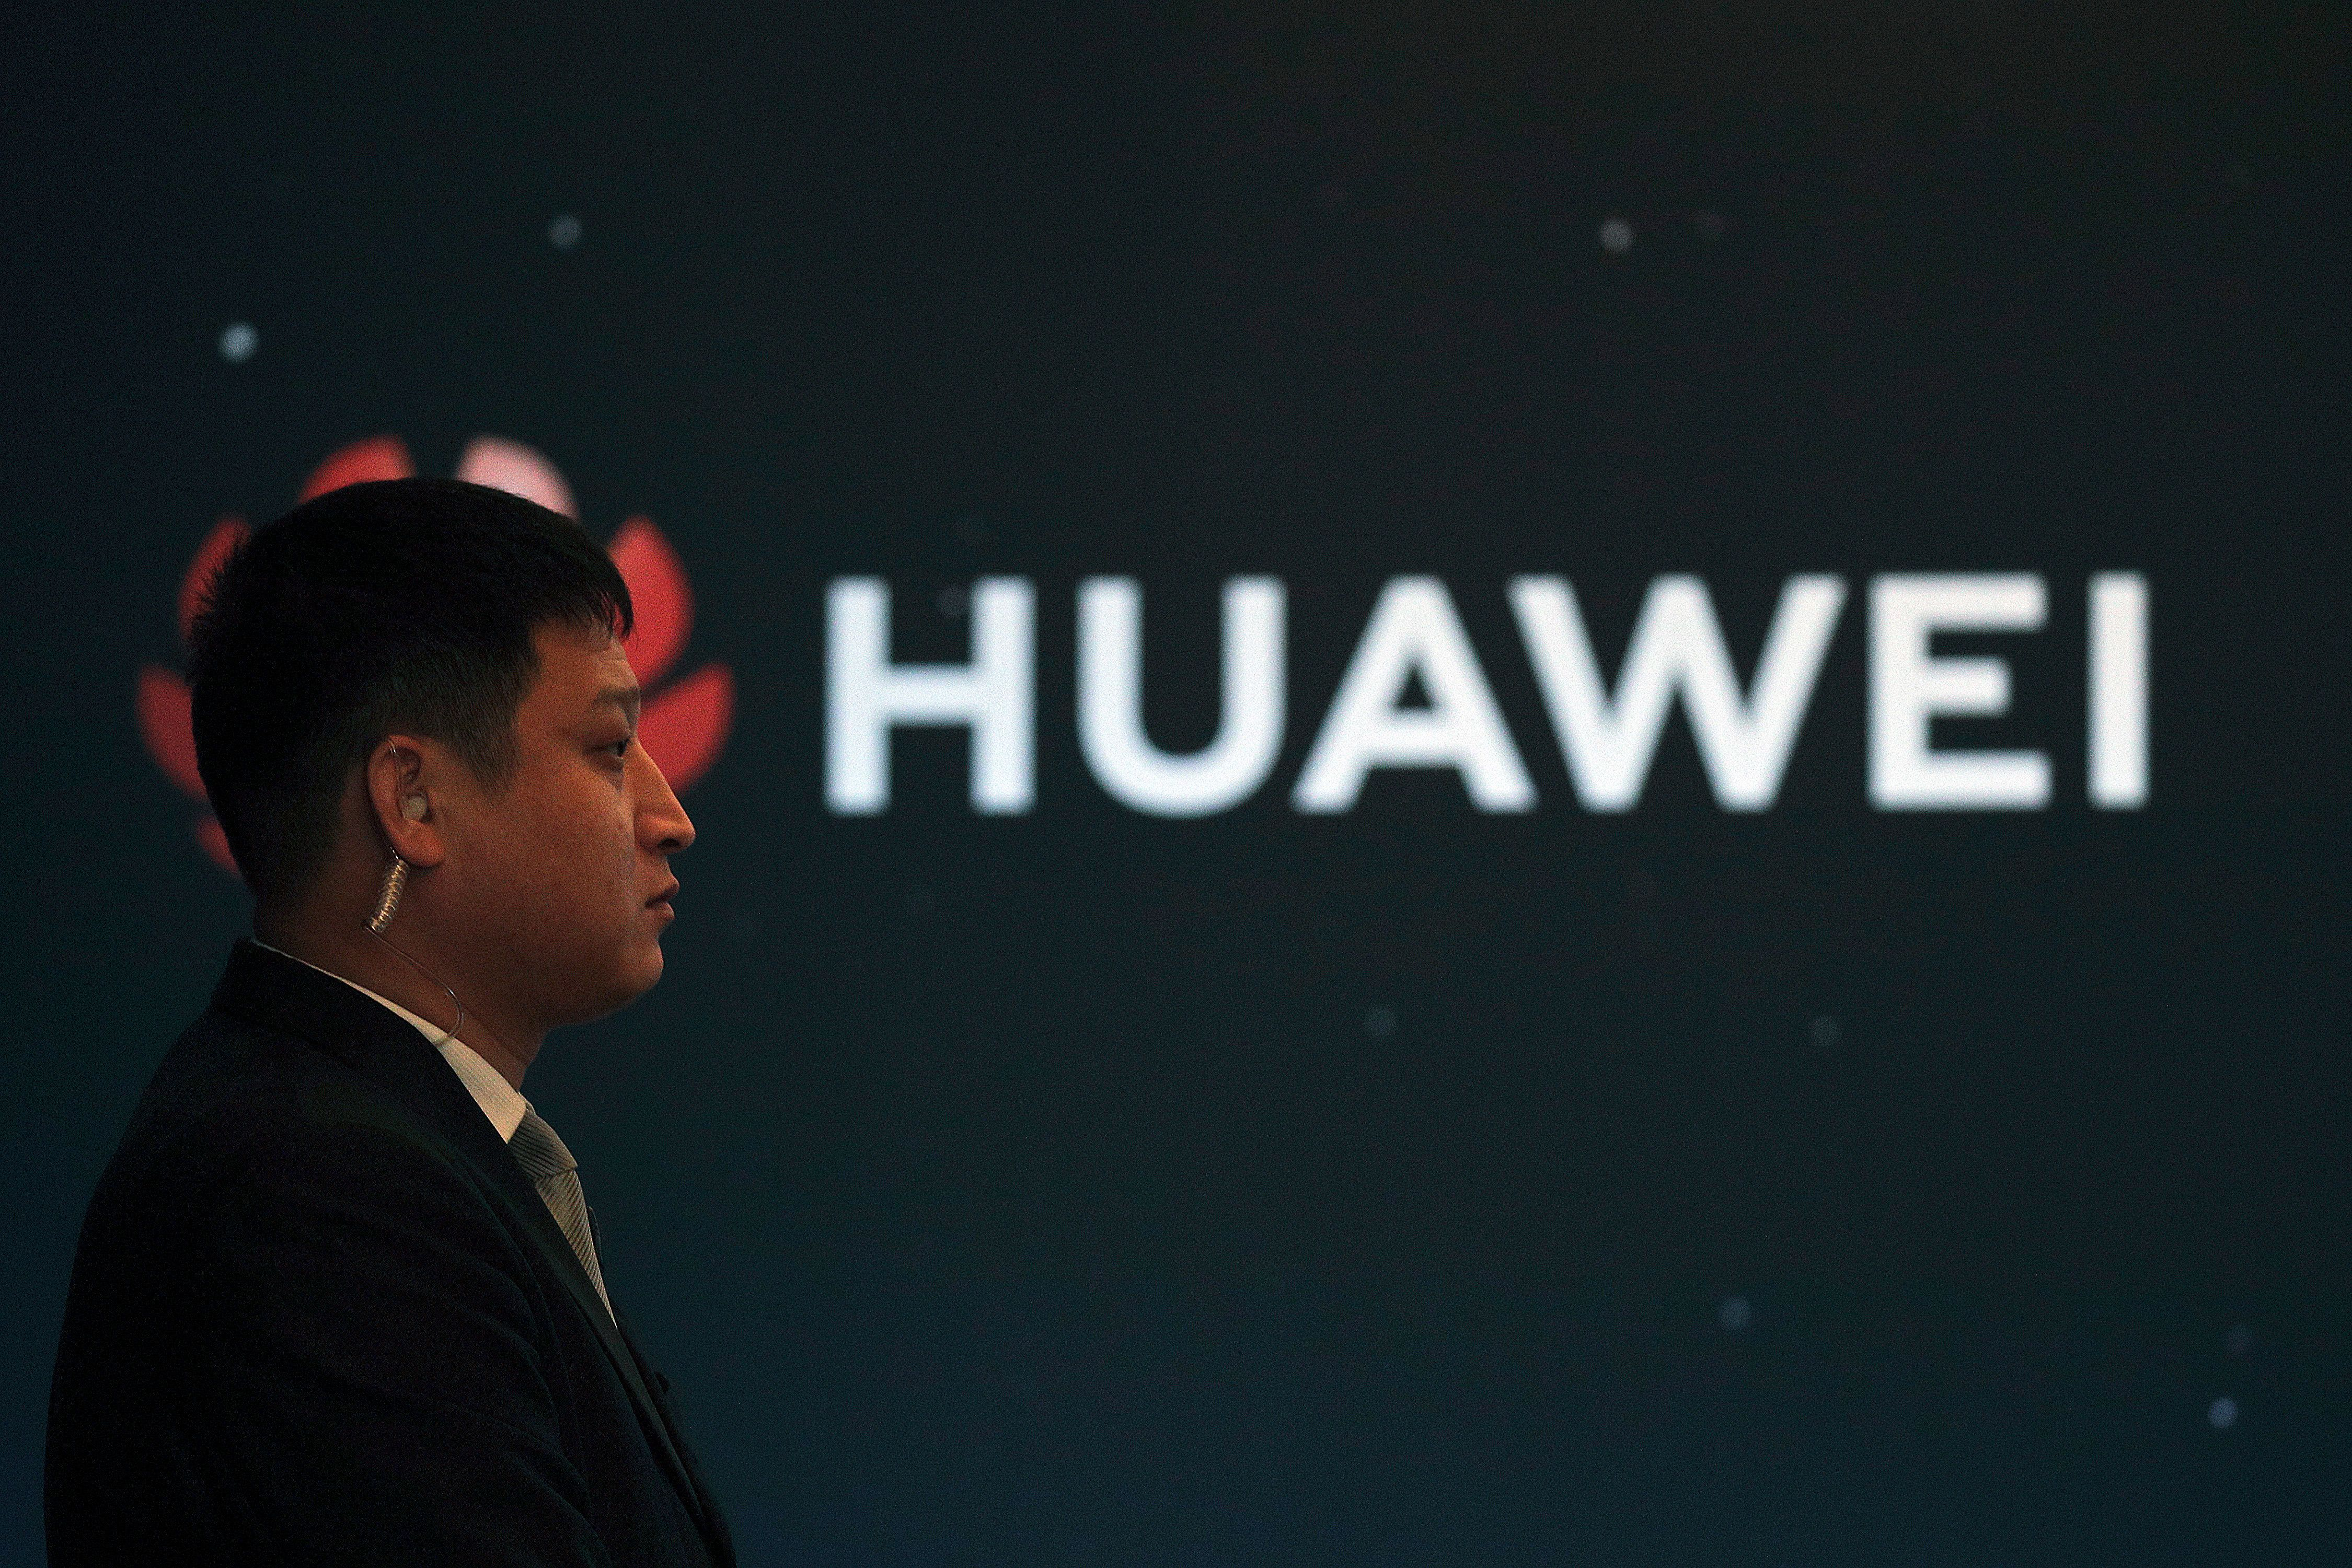 Chinese Tech Giant Huawei Fires Sales Director Accused By Poland Of